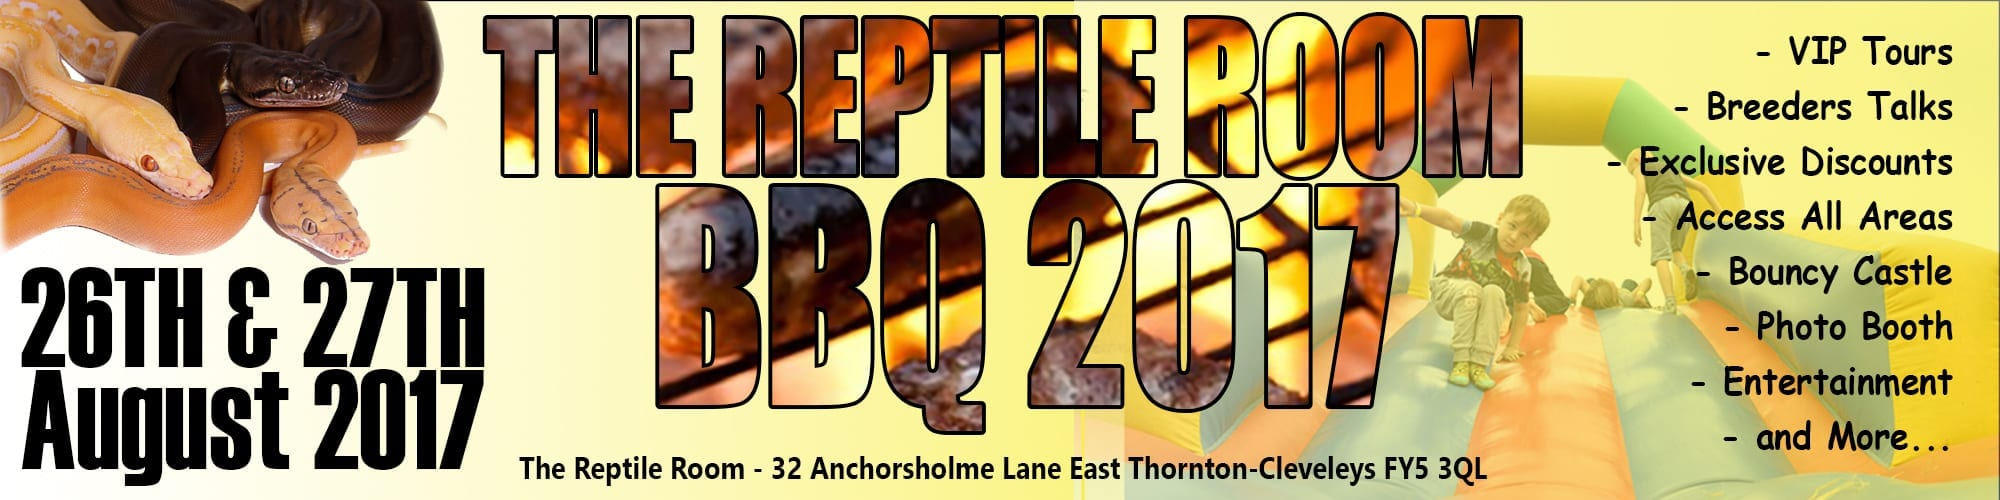 reptile room banner 2017